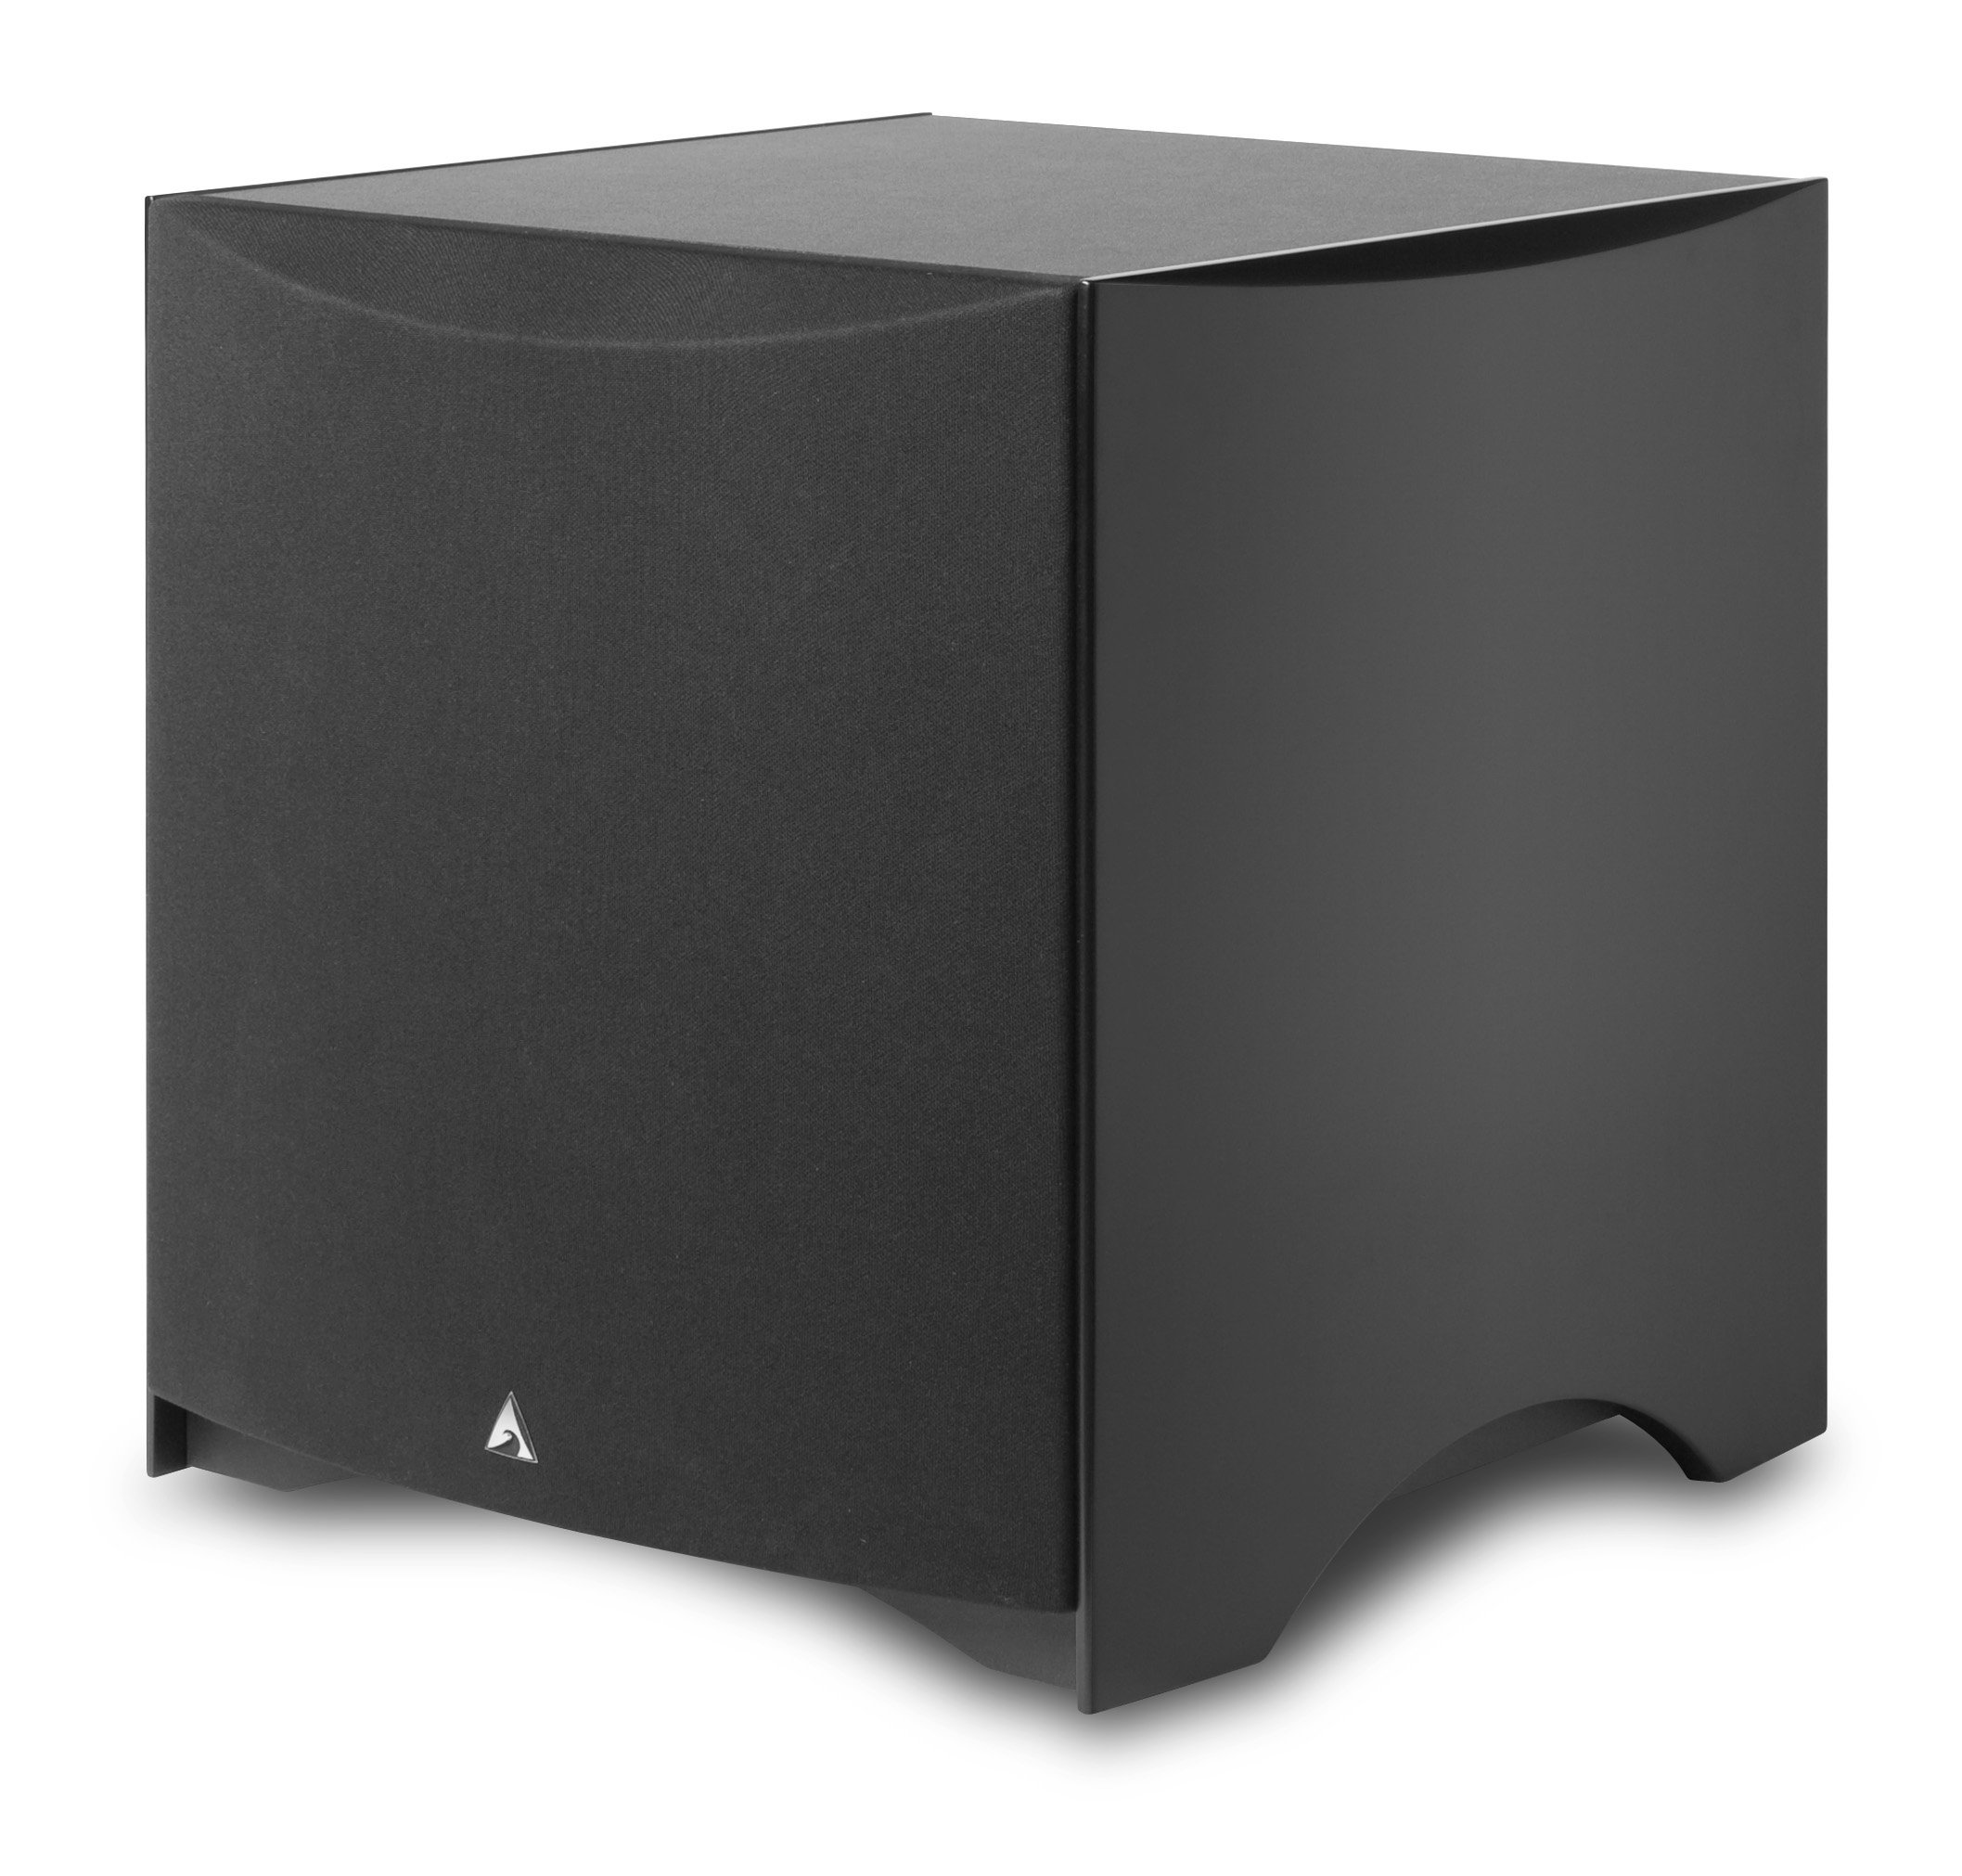 Atlantic Technology 444SB-BLK 12'' Powered Subwoofer, 325-Watt (Single, Black) by Atlantic Technology